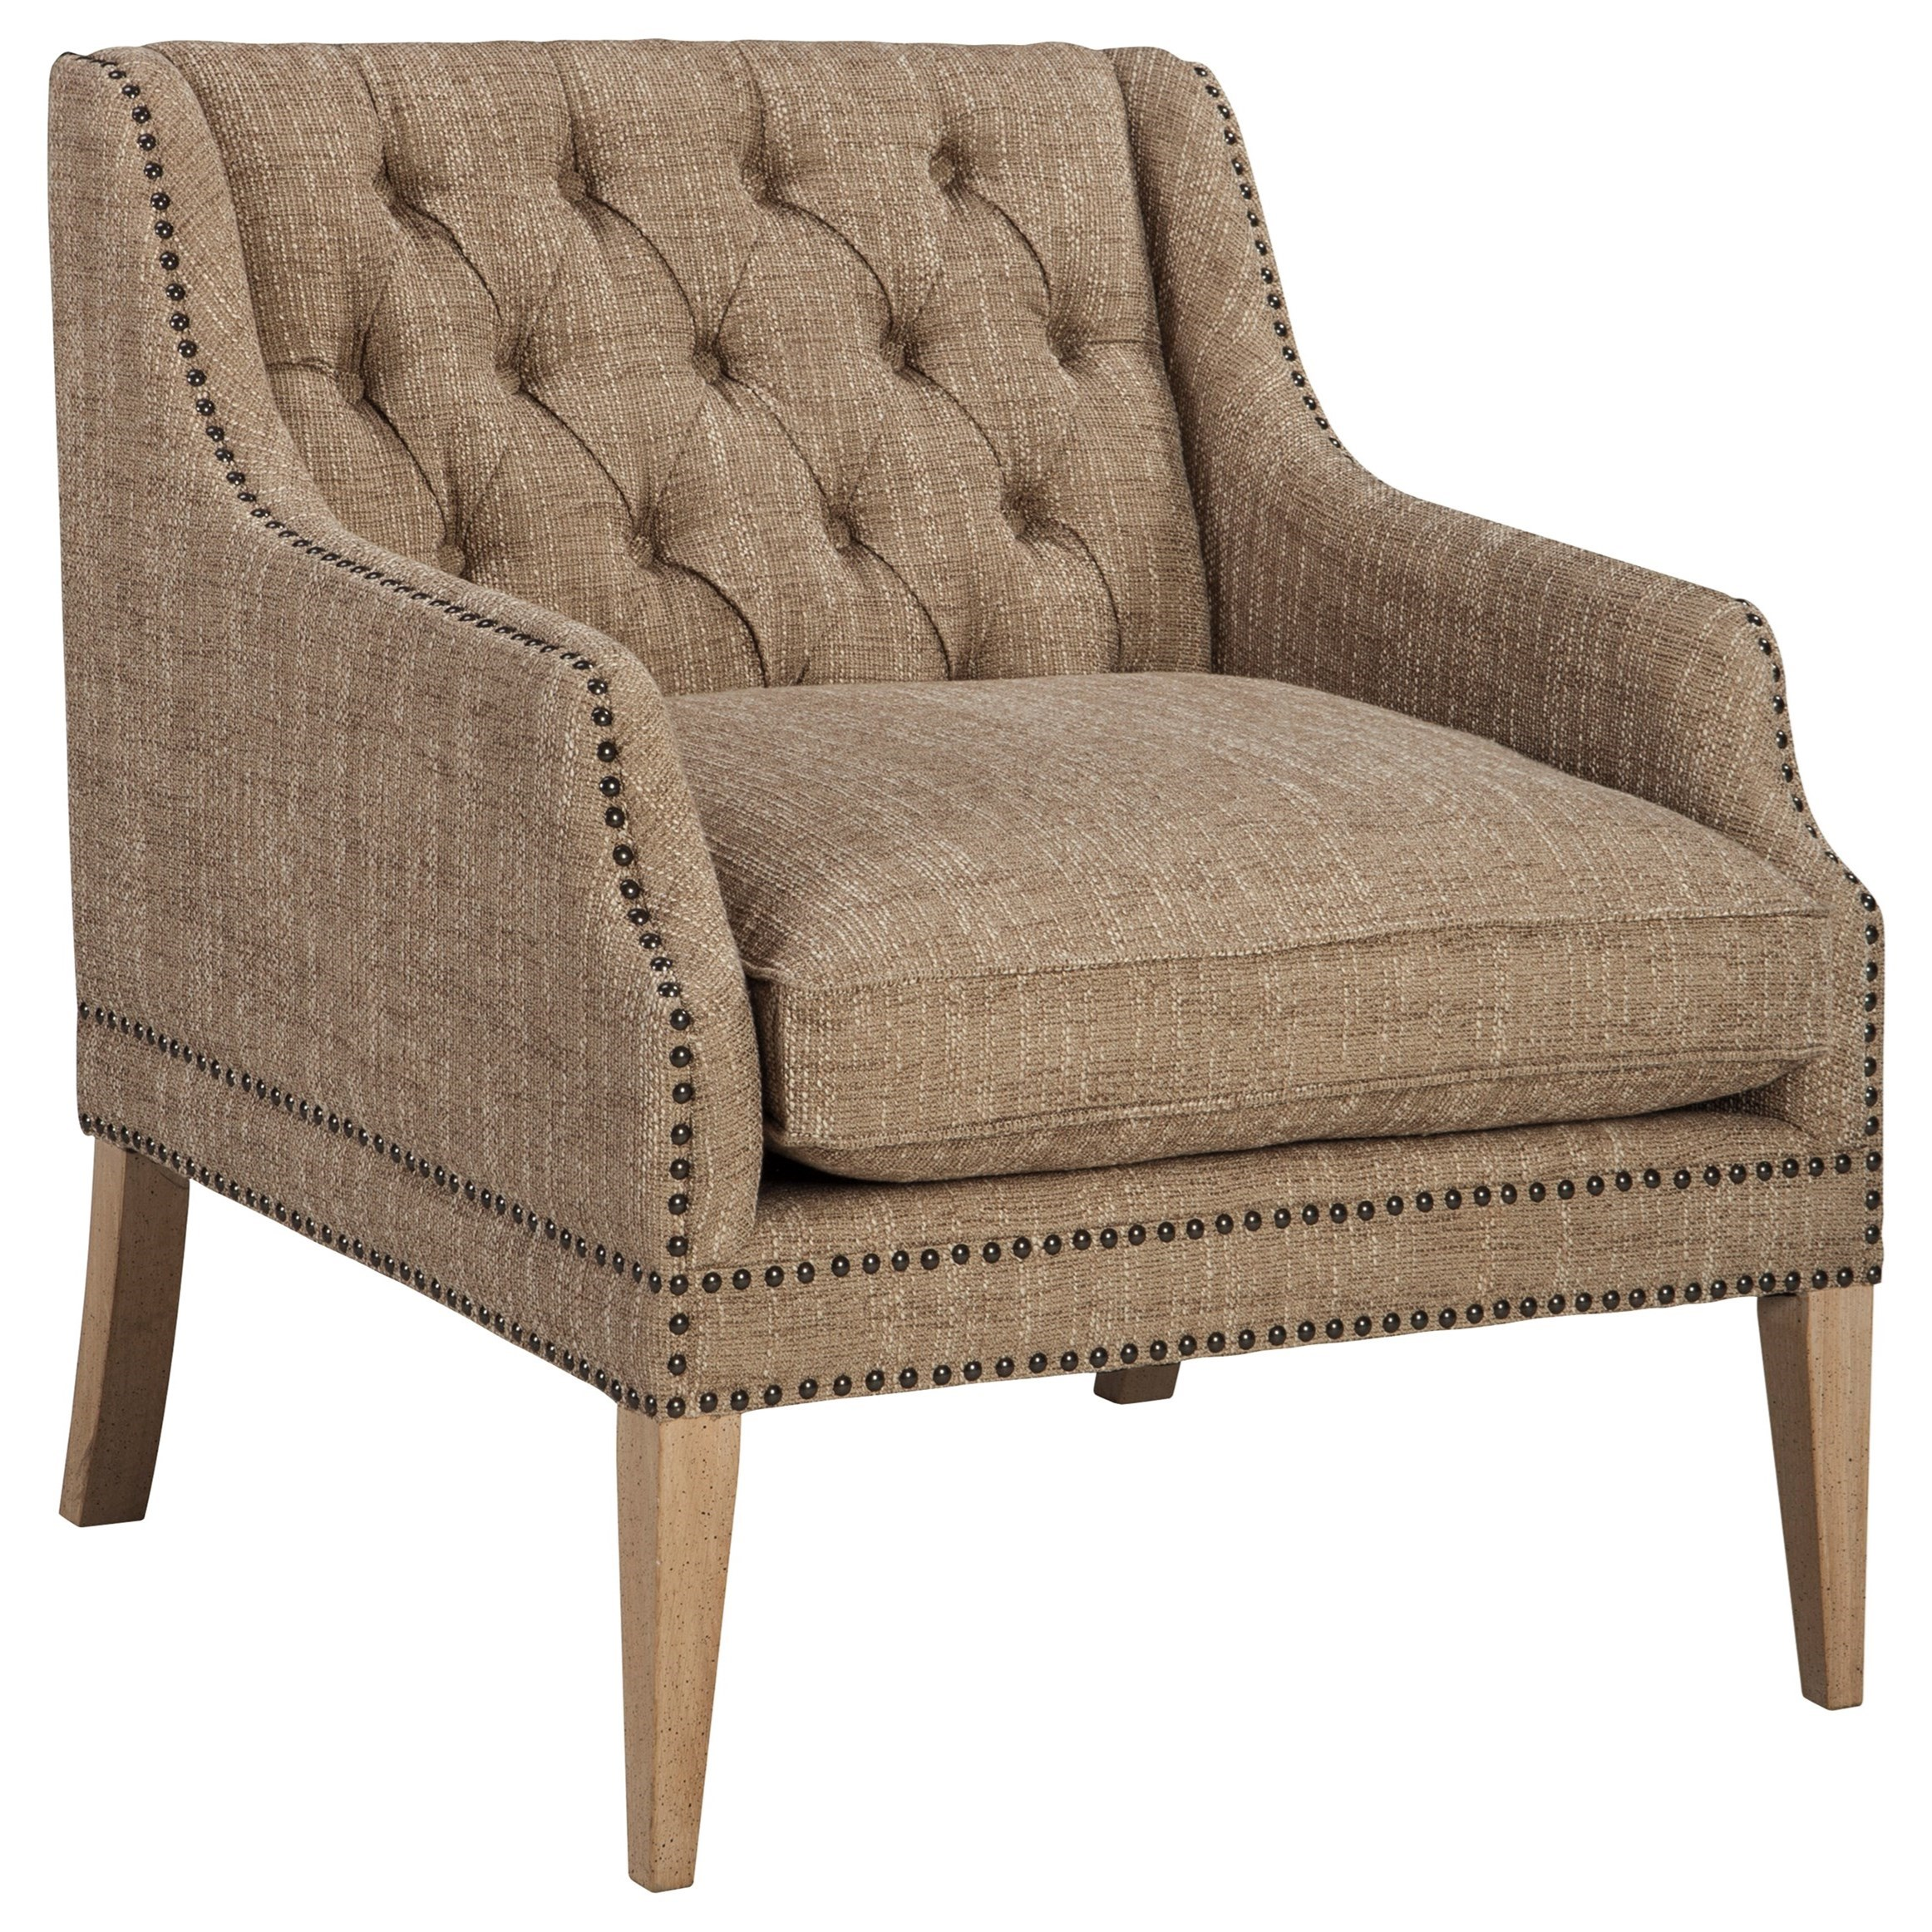 Signature Design by Ashley Trivia Accent Chair - Item Number: A3000025